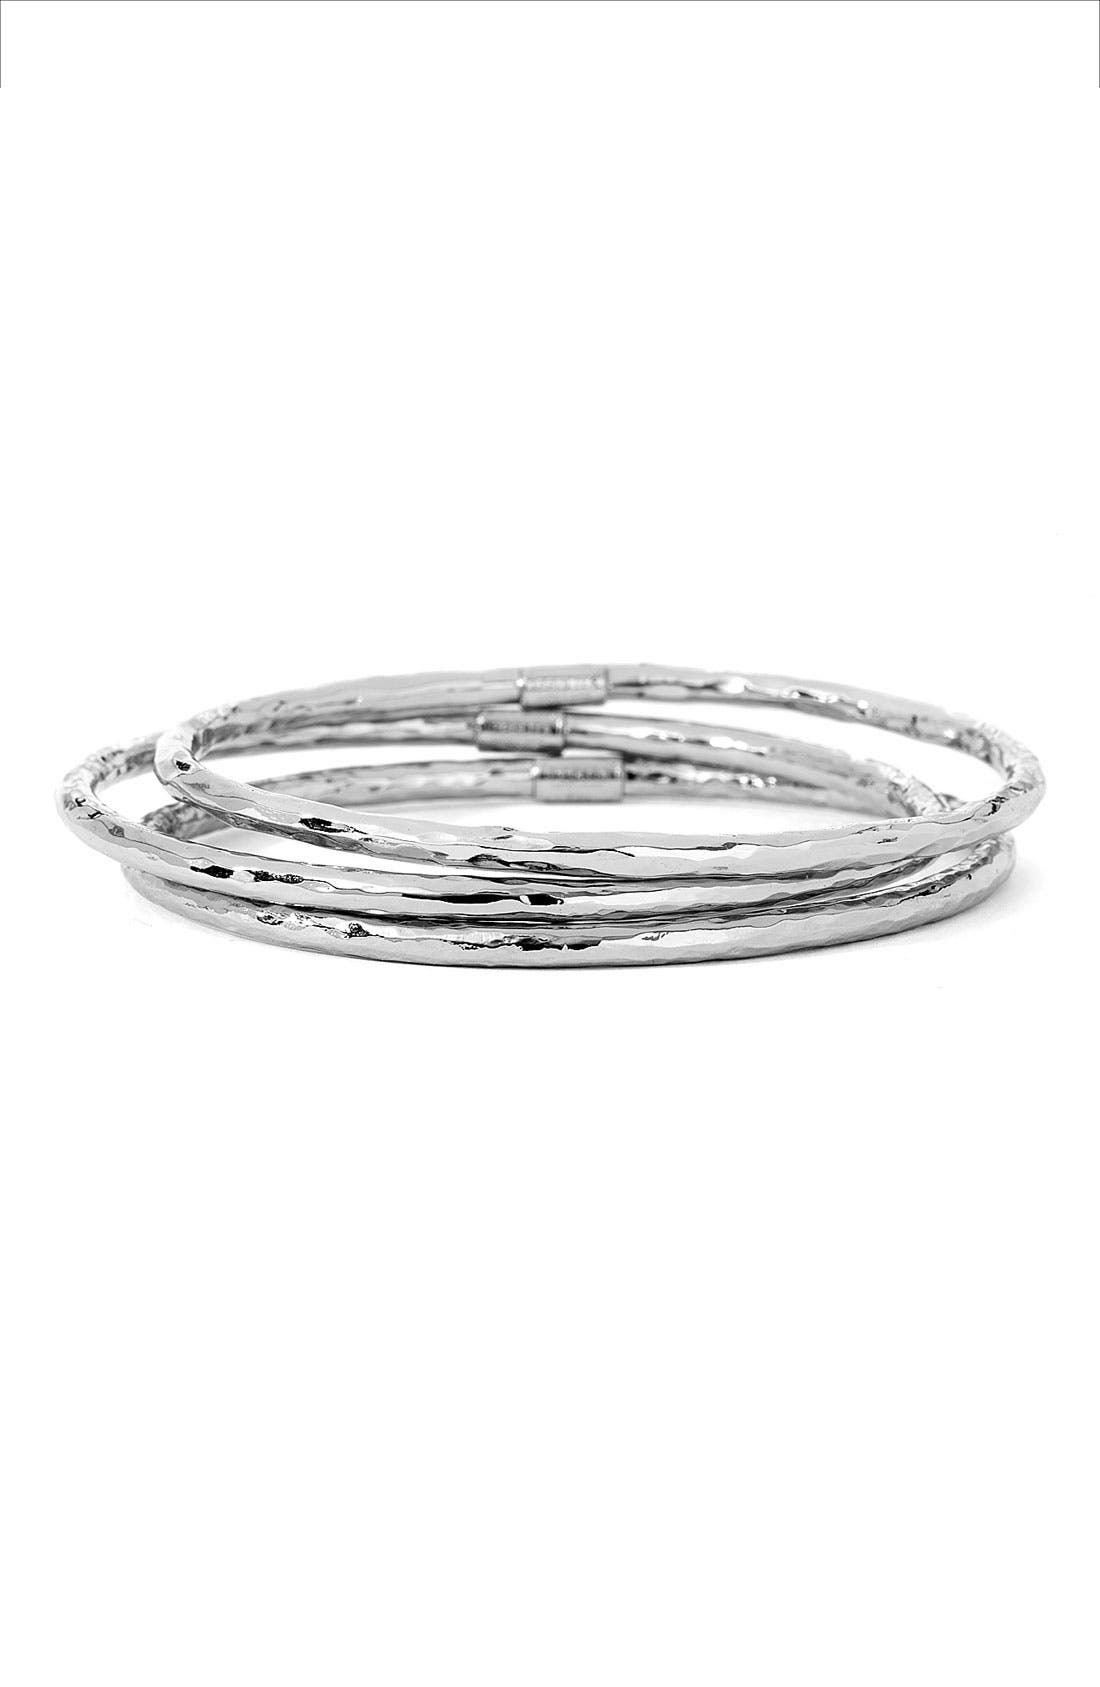 Alternate Image 2  - Ippolita 'Glamazon' 4mm Hammered Bangle